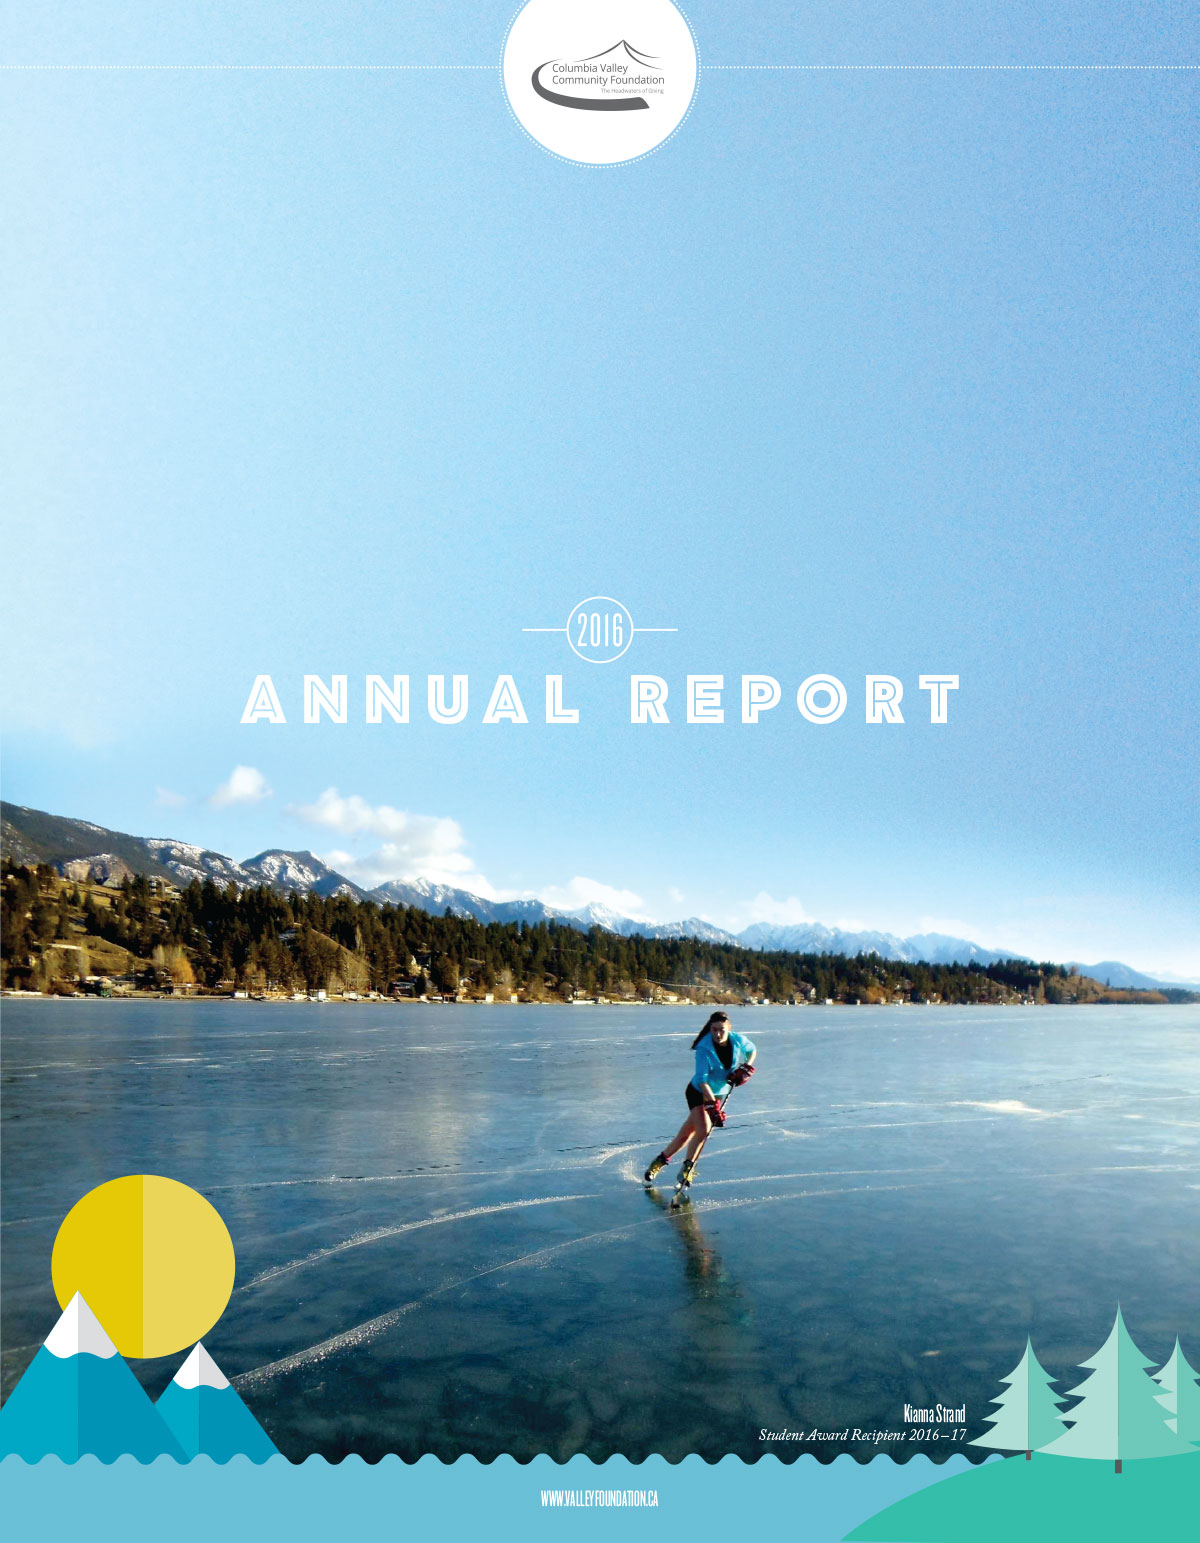 Columbia Valley Community Foundation - Annual Report 2016